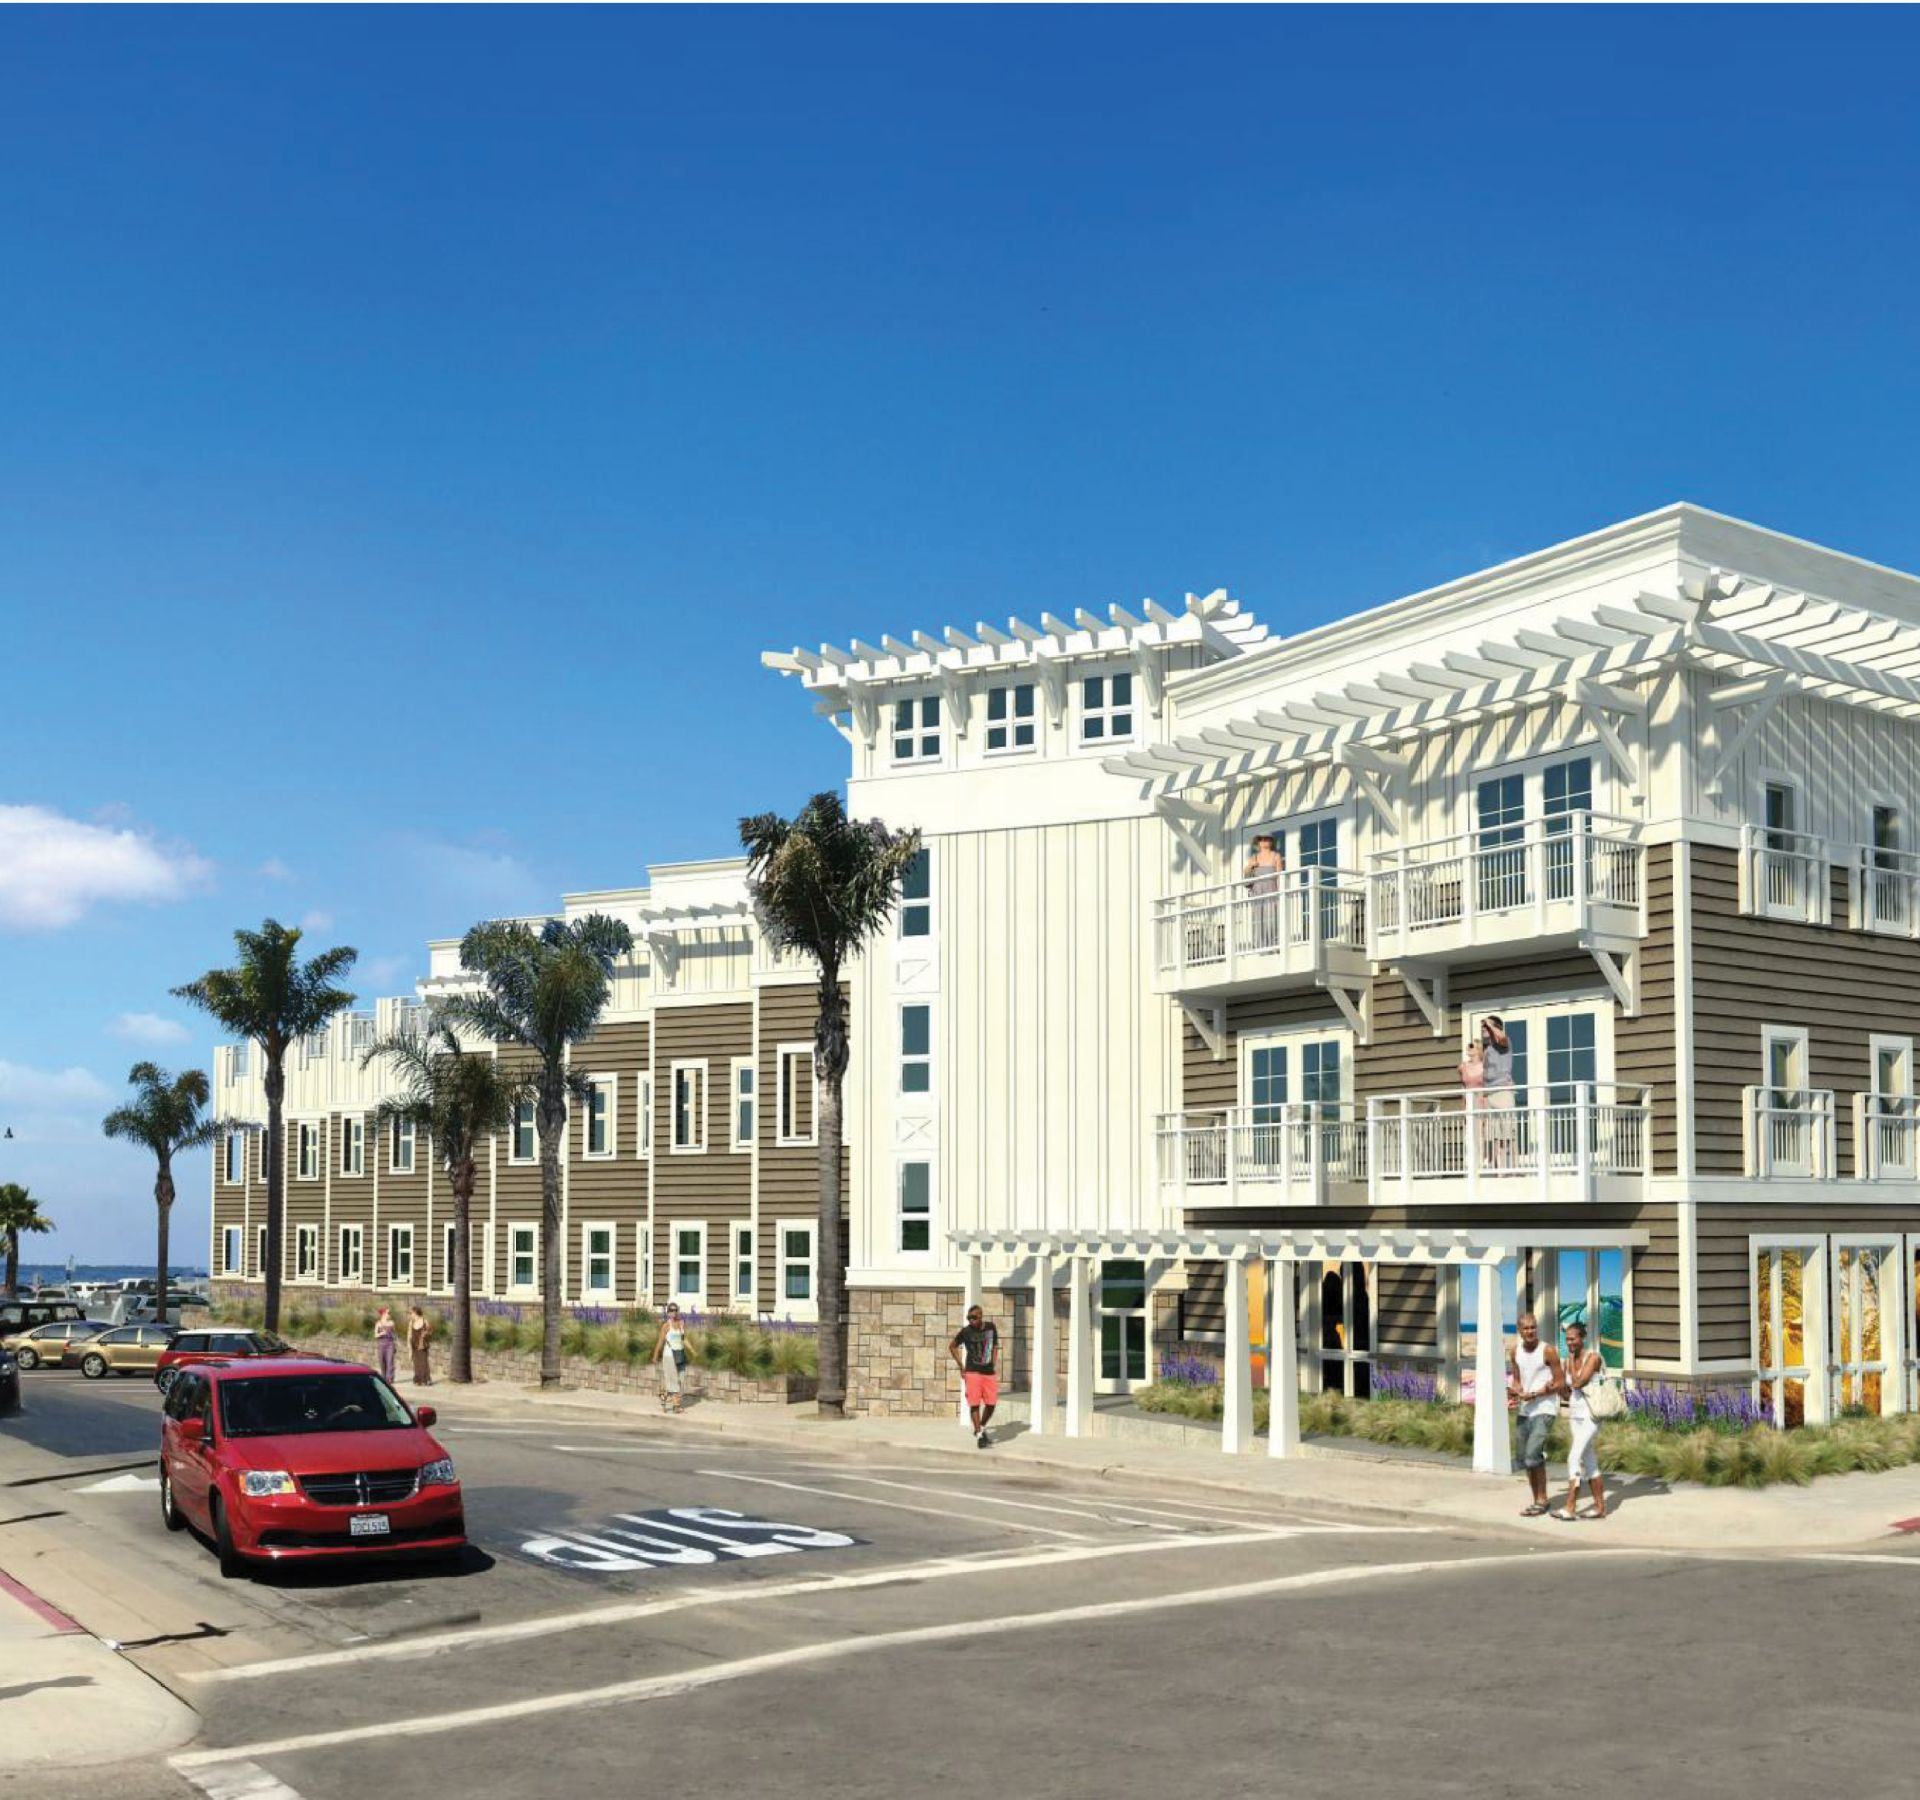 Port St Lucie Hotel: Hotel In Downtown Pismo Beach